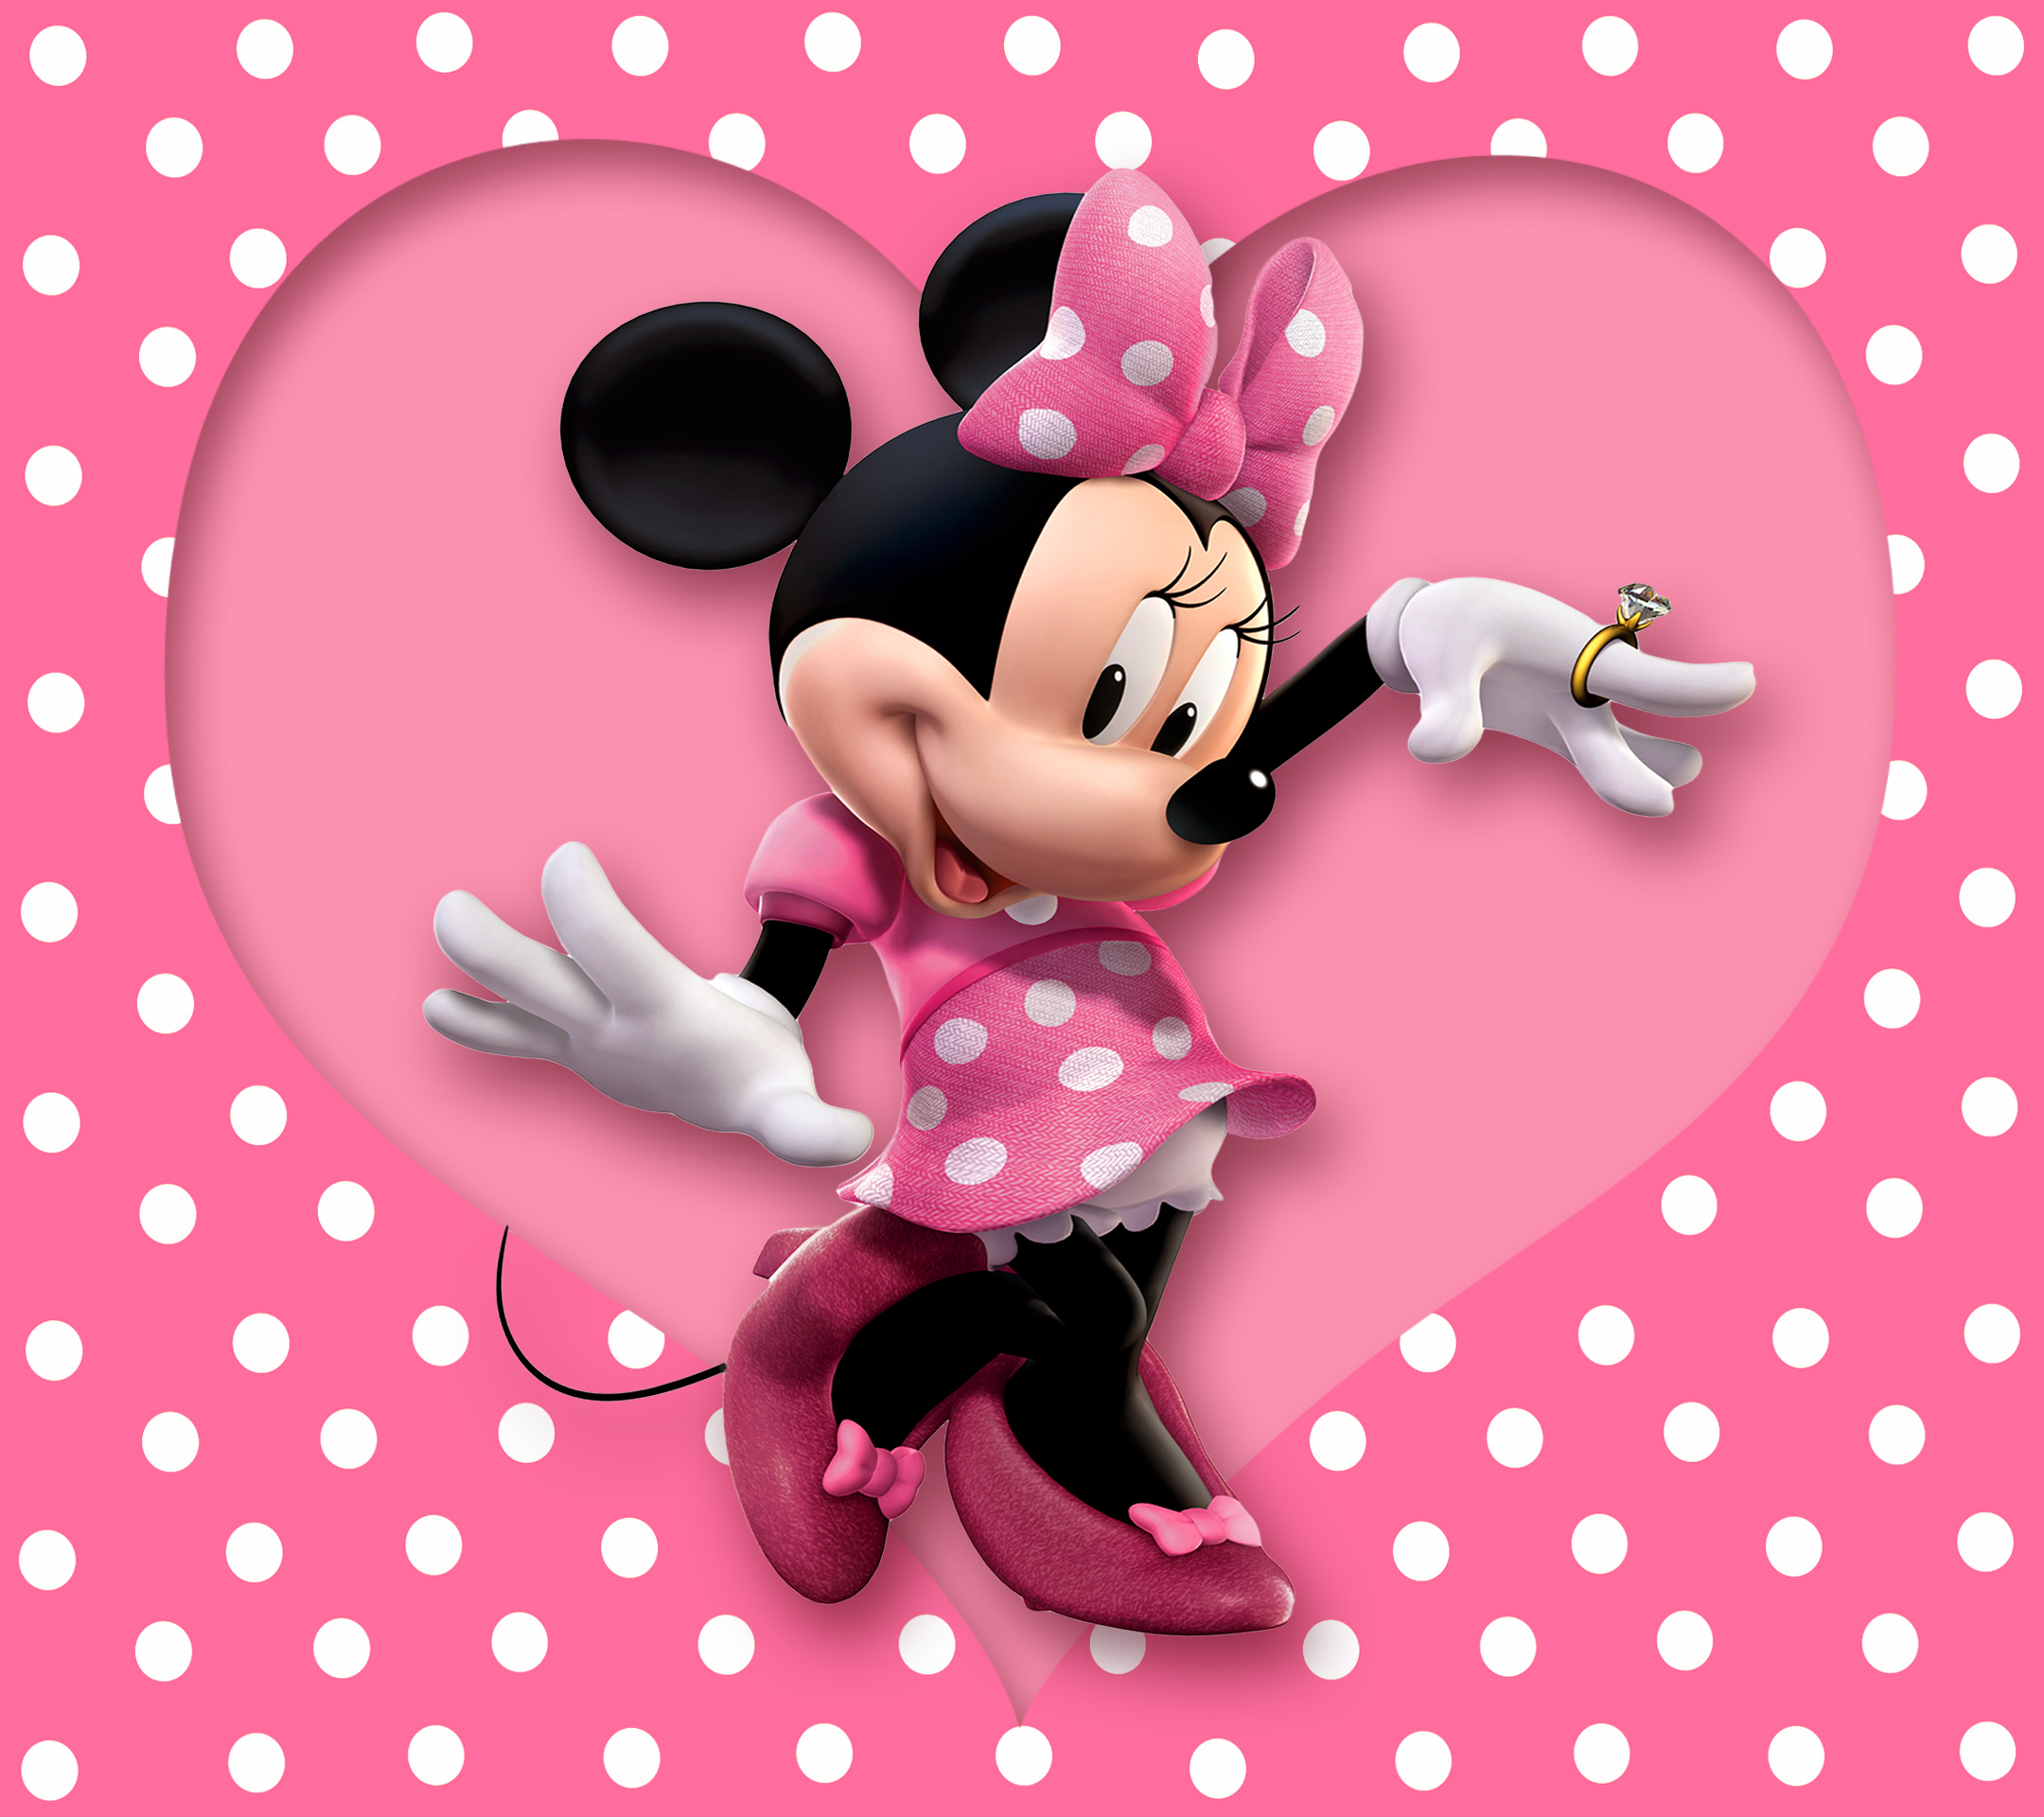 Download Baby Mickey And Minnie Mouse Wallpaper Gallery